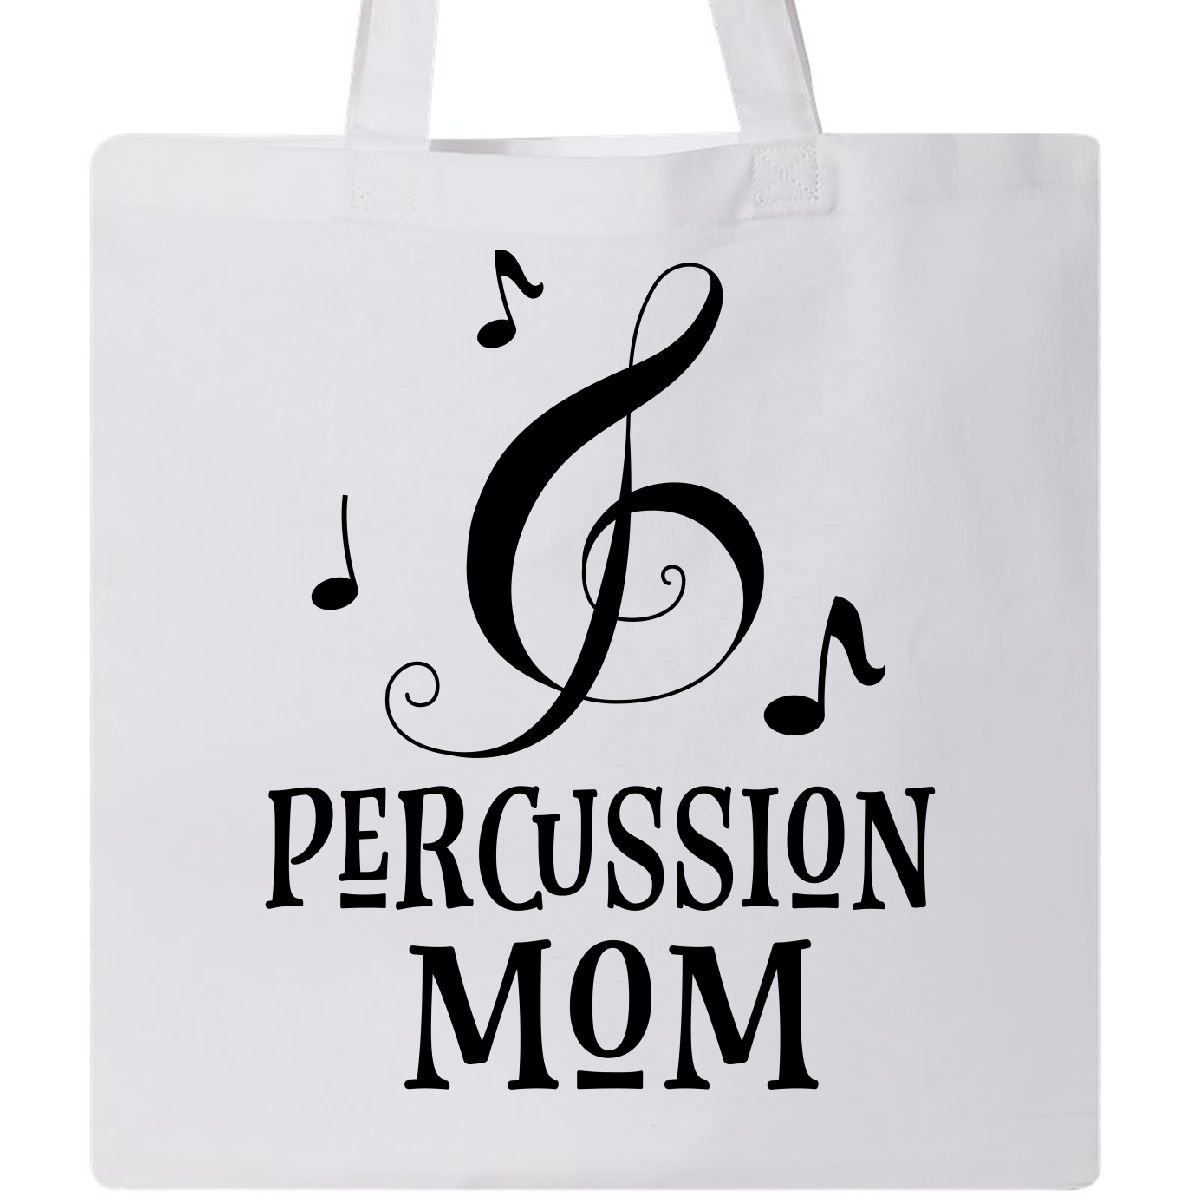 Inktastic – Percussion Mom Marching Band Drummerギフトトートバッグ One Size B075QLVGFK  ホワイト